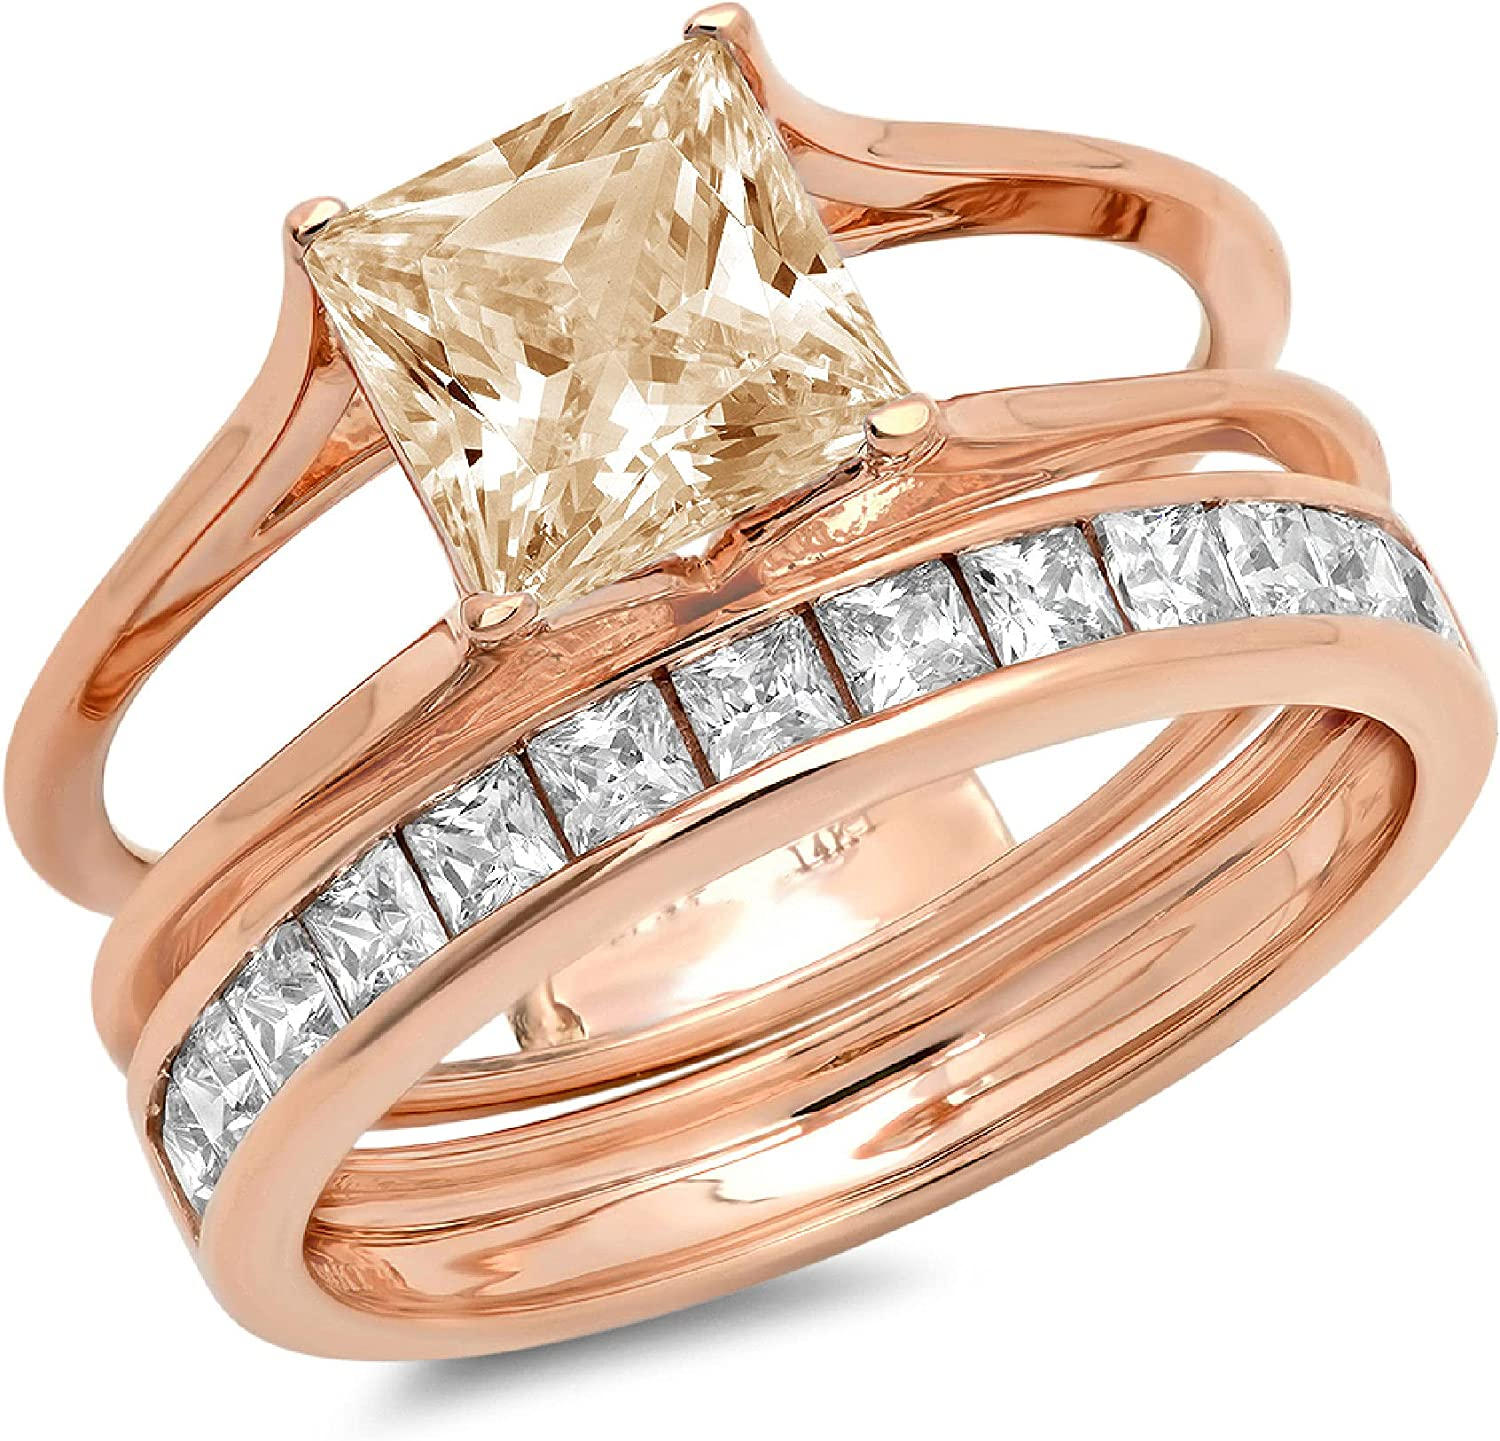 3.45 ct Princess Cut Pave Solitaire Accent Flawless Yellow Moissanite Modern Wedding Bridal Anniversary Wedding Ring Band set Sliding Solid 14k Rose Gold